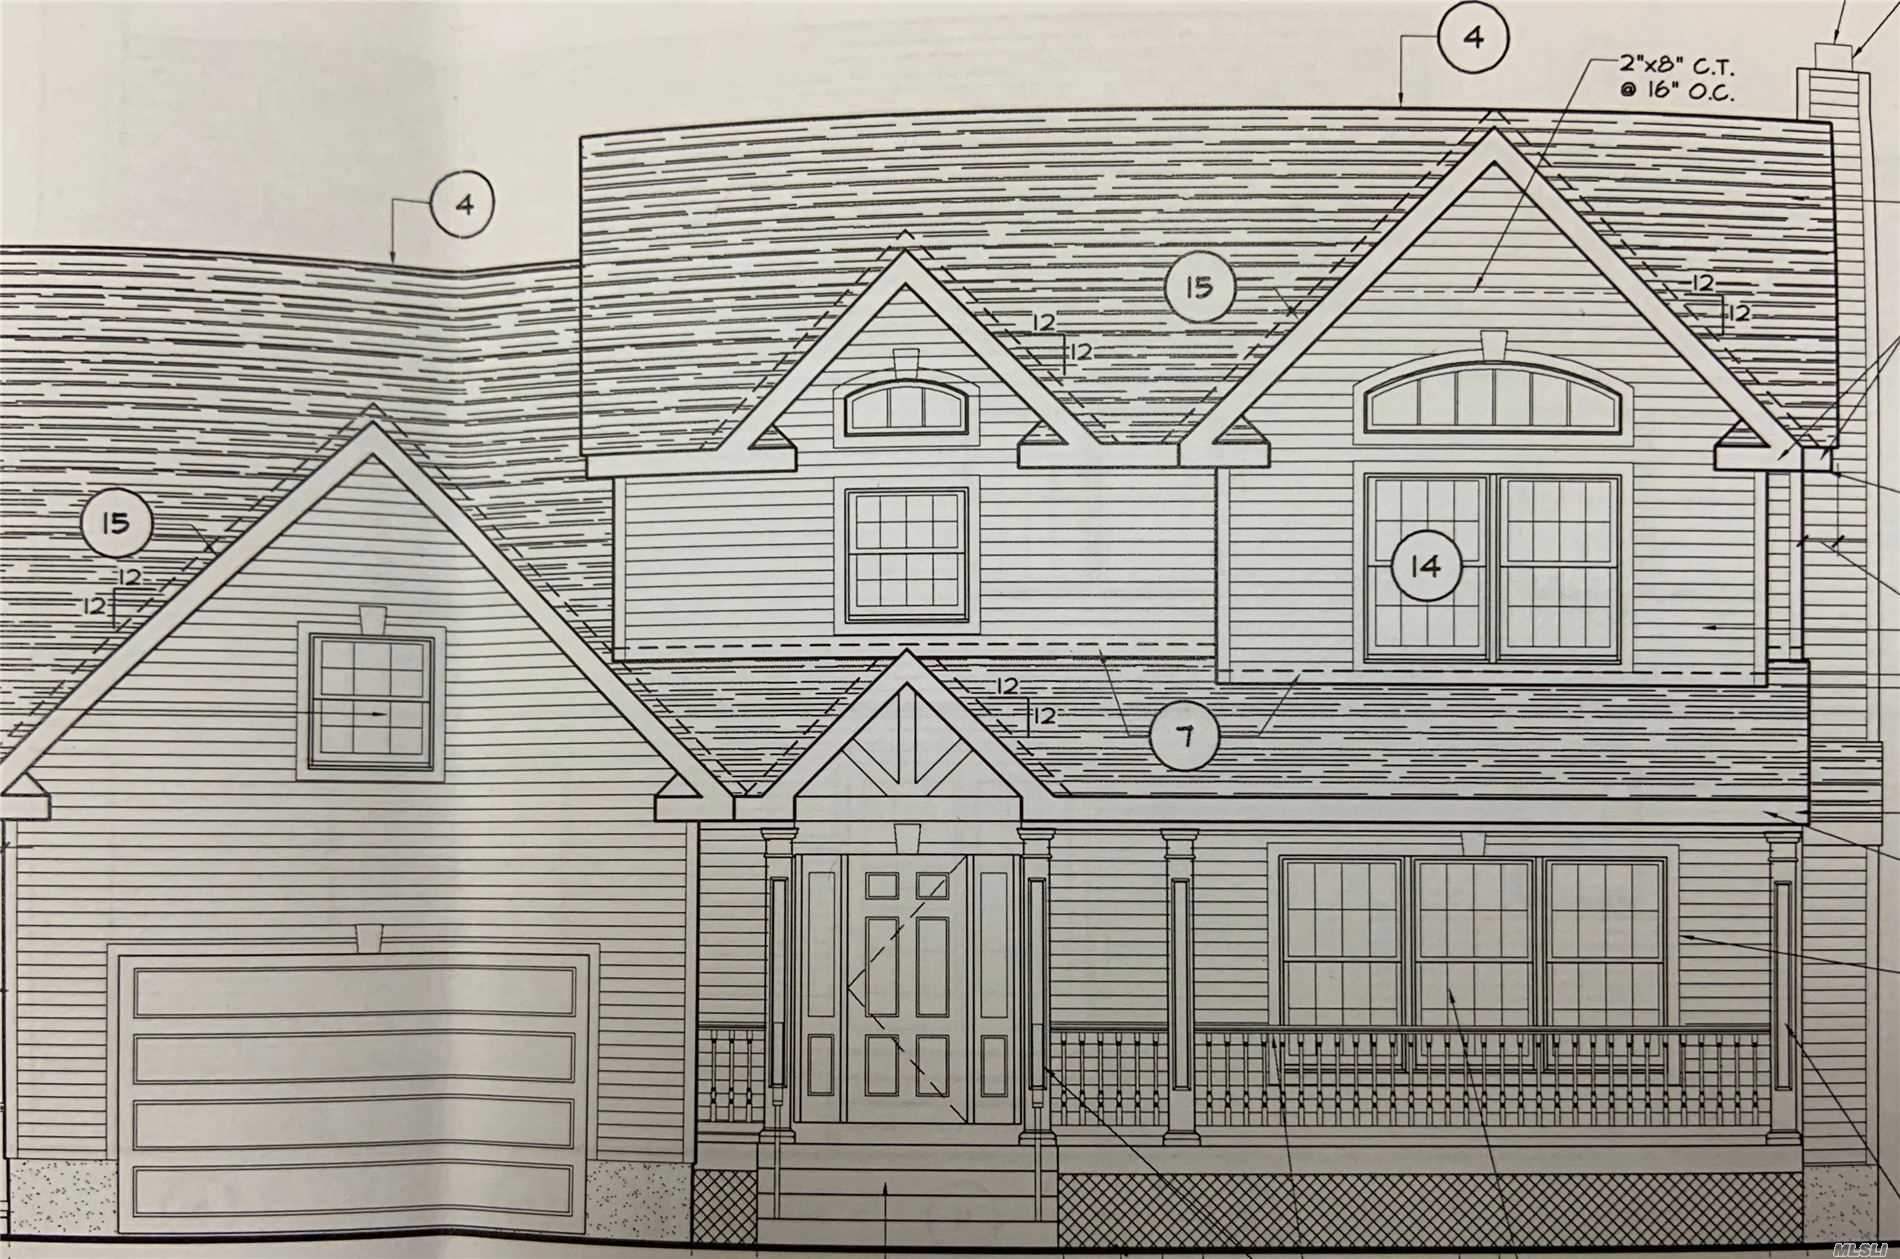 Brand New Construction! Colonial w/Covered Front Porch to be Built in Prime West Islip School District! Roomy Entry Foyer Will Welcome You Home to the Spacious Main Floor Kitchen w/Pantry, Large Open Dining Room, Living Room + Great Room w/Fireplace, Half-Bath. 2nd Floor Boasts Master Suite w/Full Bath + 3 Bedrooms + CPU/Sitting Room, Laundry and Full Bath.